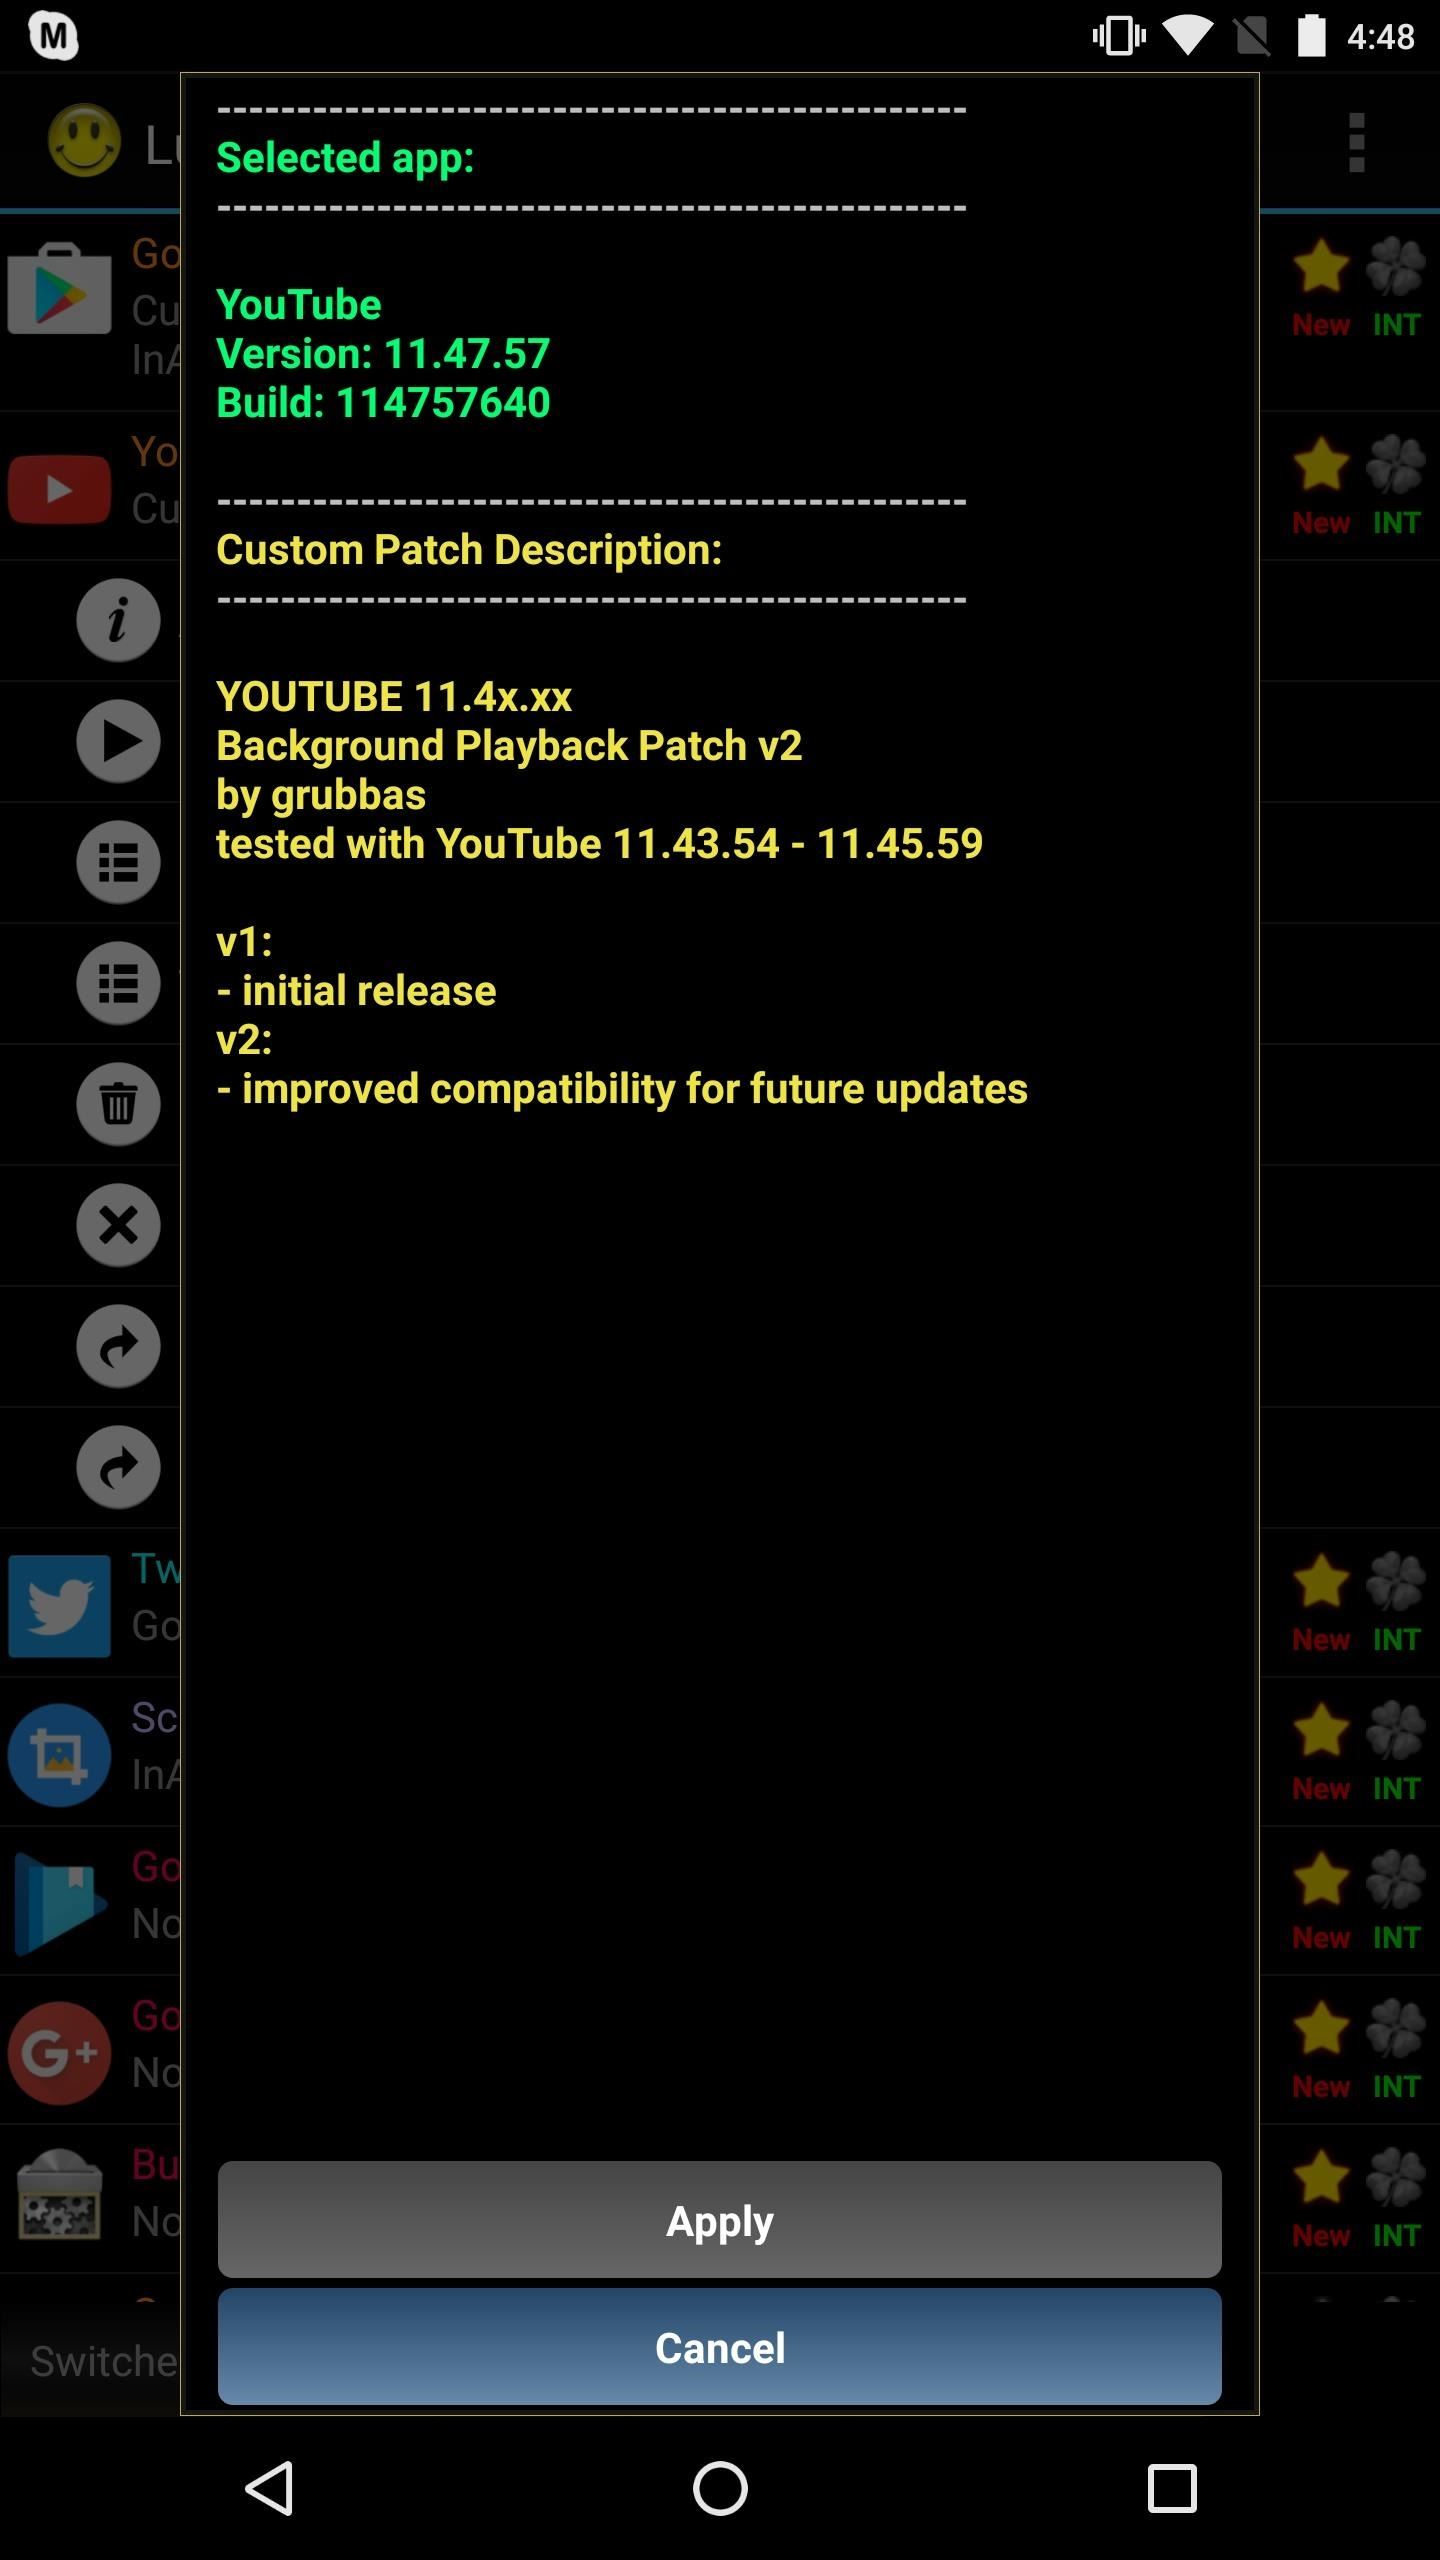 Enable YouTube Background Playback For Free On Android